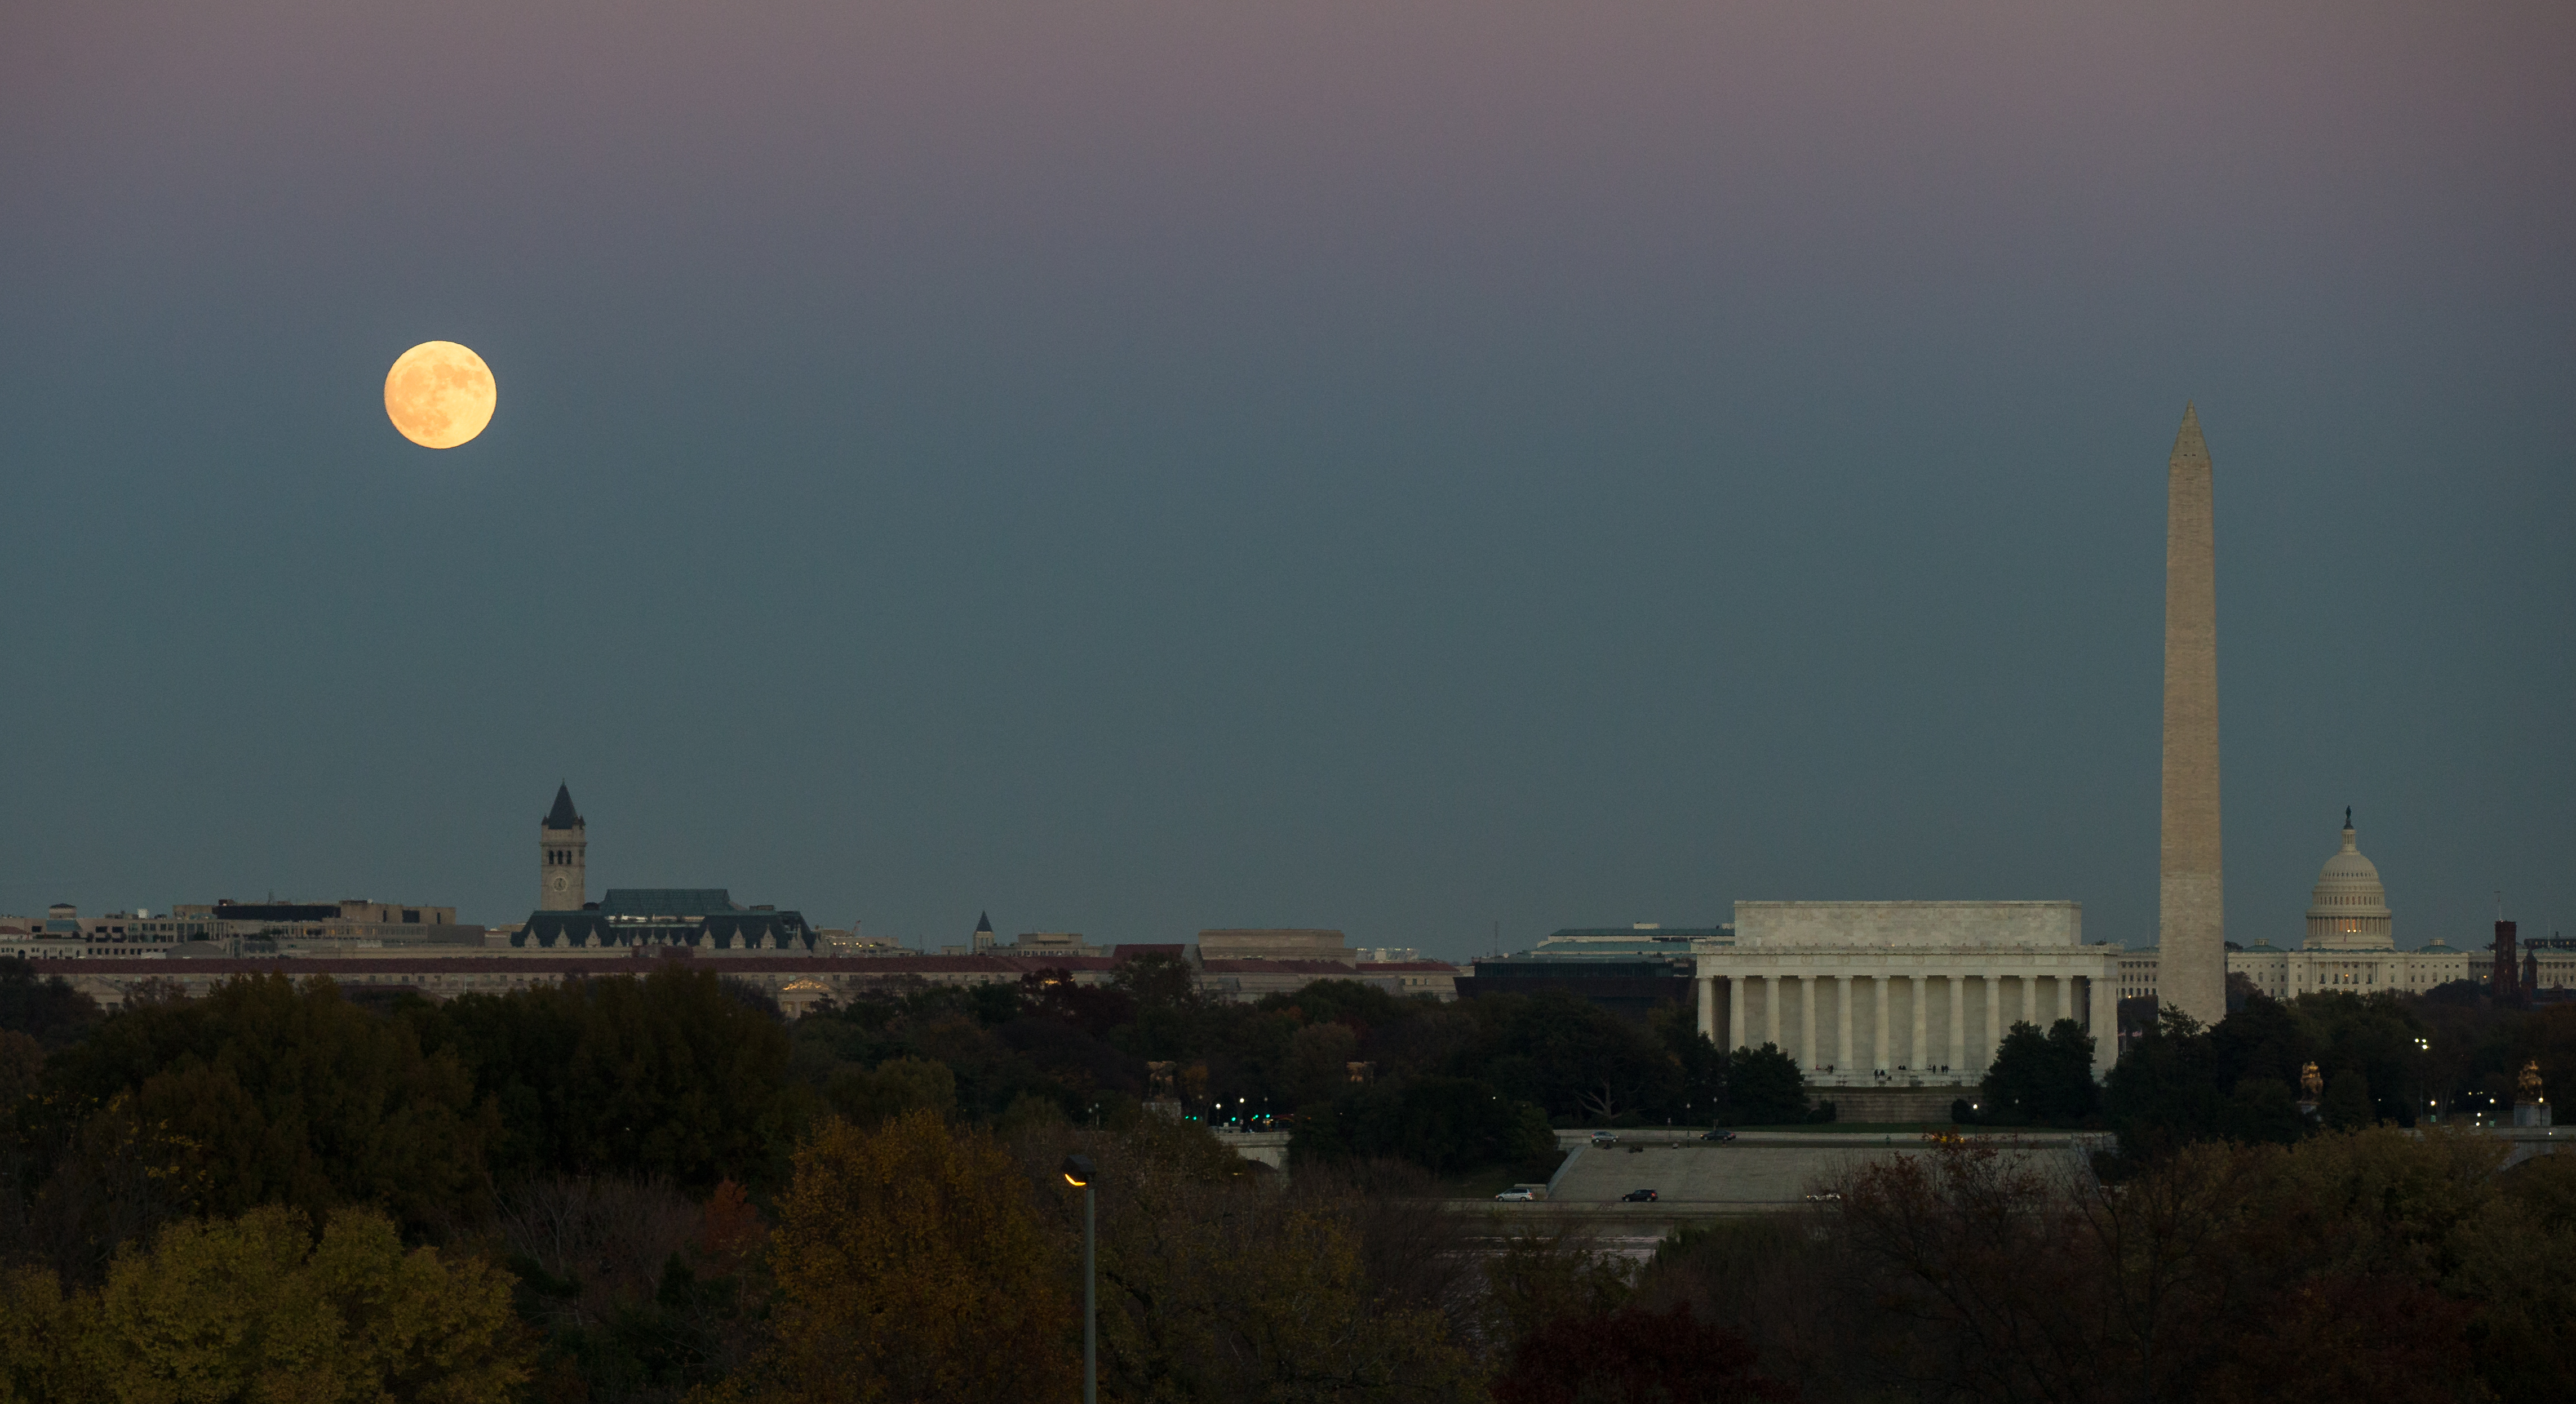 The moon is seen as it rises over Washington, D.C.